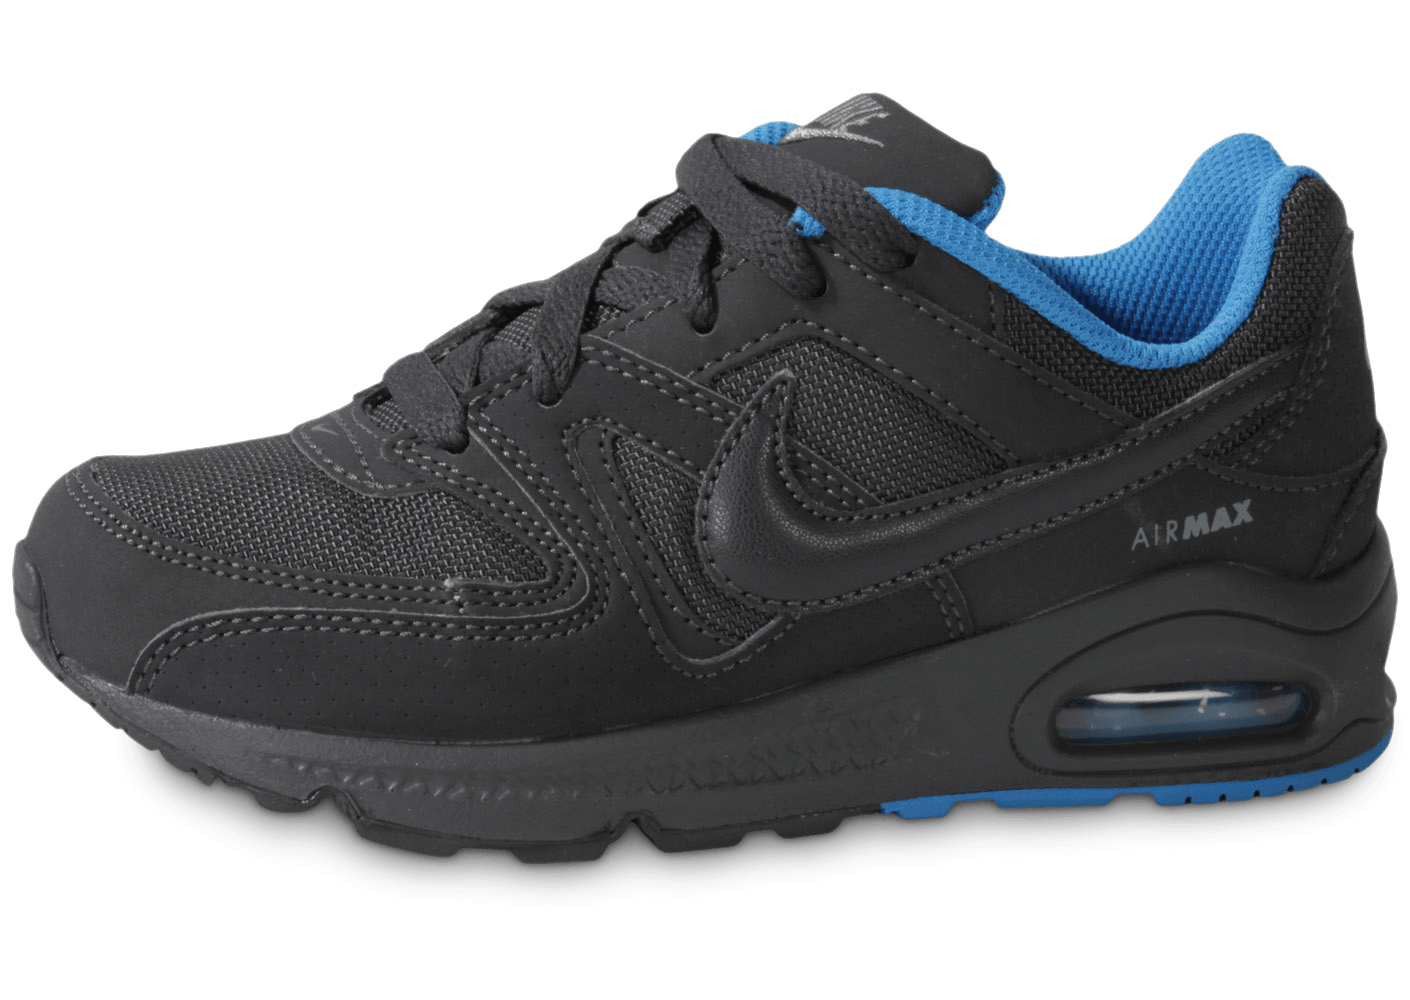 competitive price 21fb5 4957f Chaussures Nike Air Max Command , basket Air Max Command - Chausport